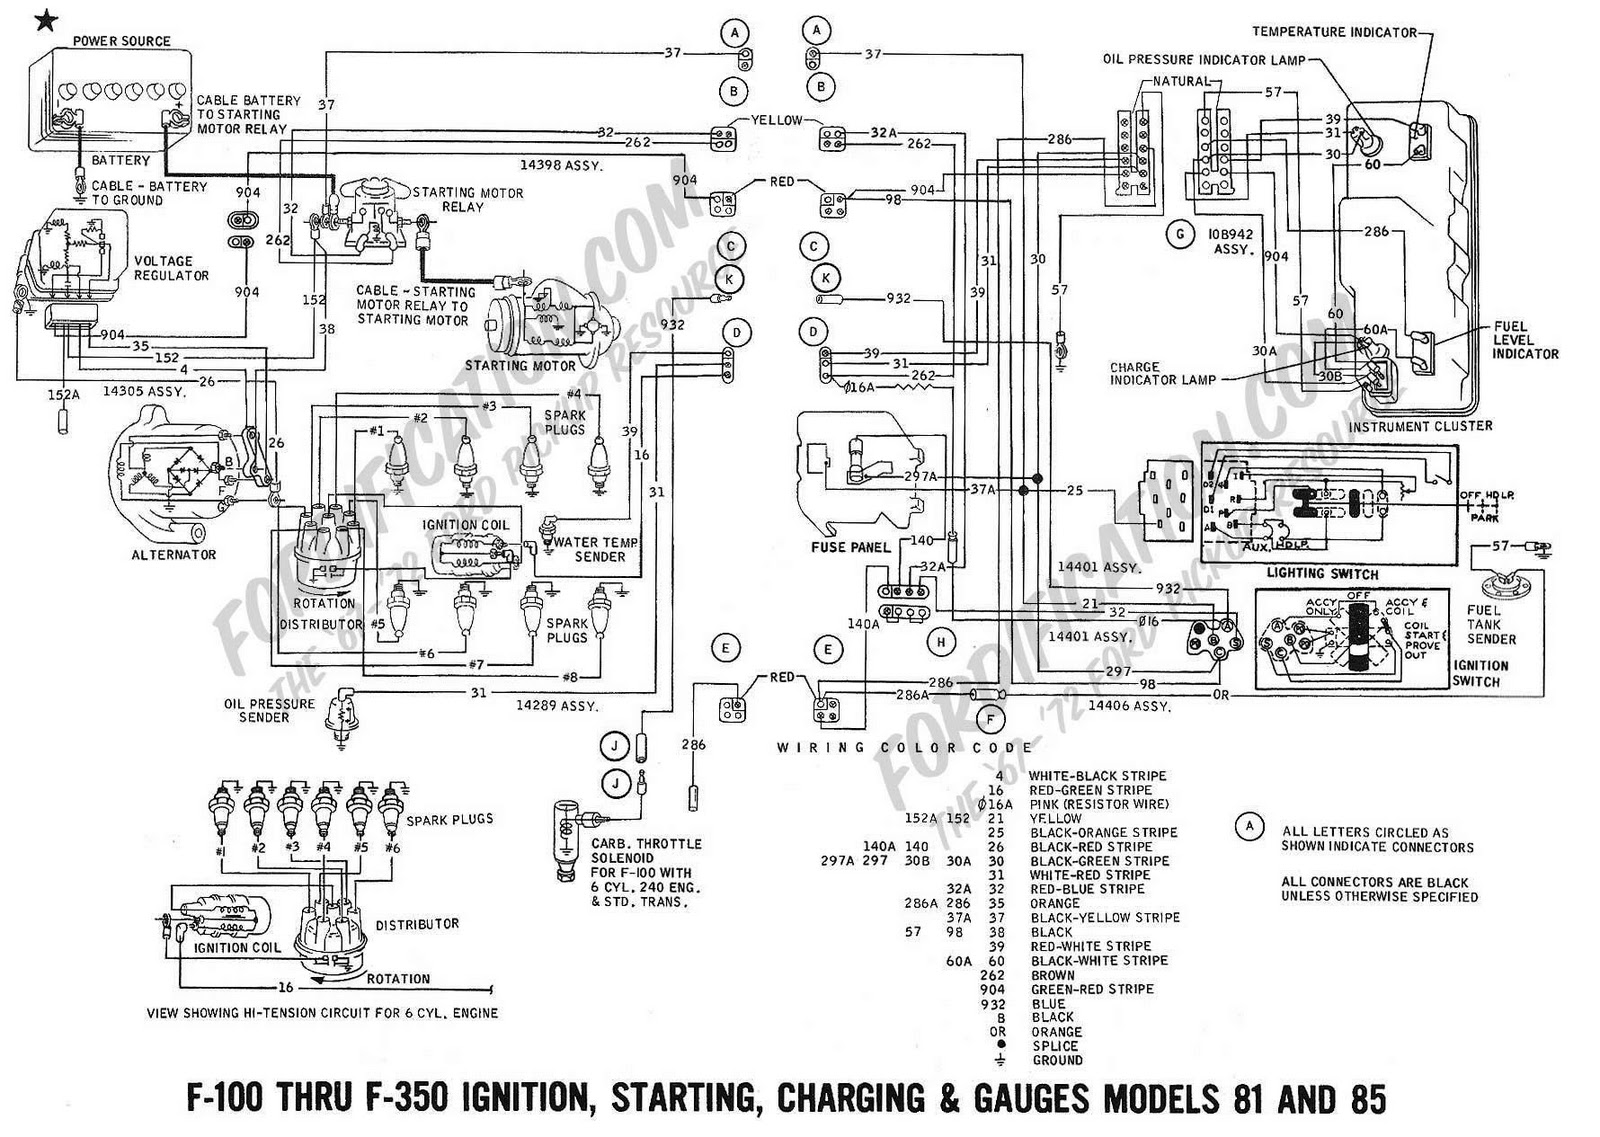 Ford F F Ignition C Starting C Charging C And Gauges Wiring Diagram on 1956 ford fairlane wiring harness diagram